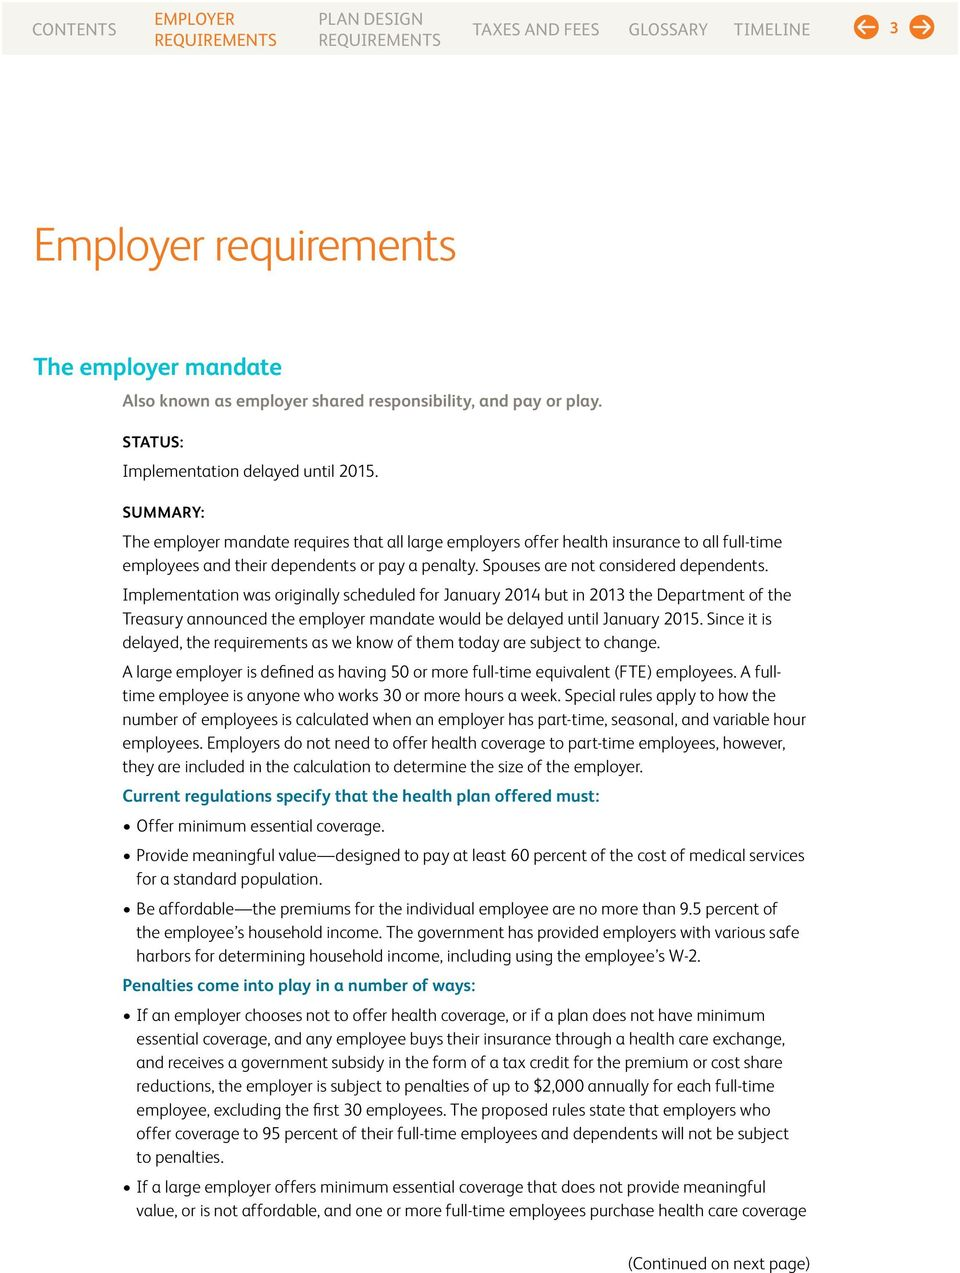 Implementation was originally scheduled for January 2014 but in 2013 the Department of the Treasury announced the employer mandate would be delayed until January 2015.